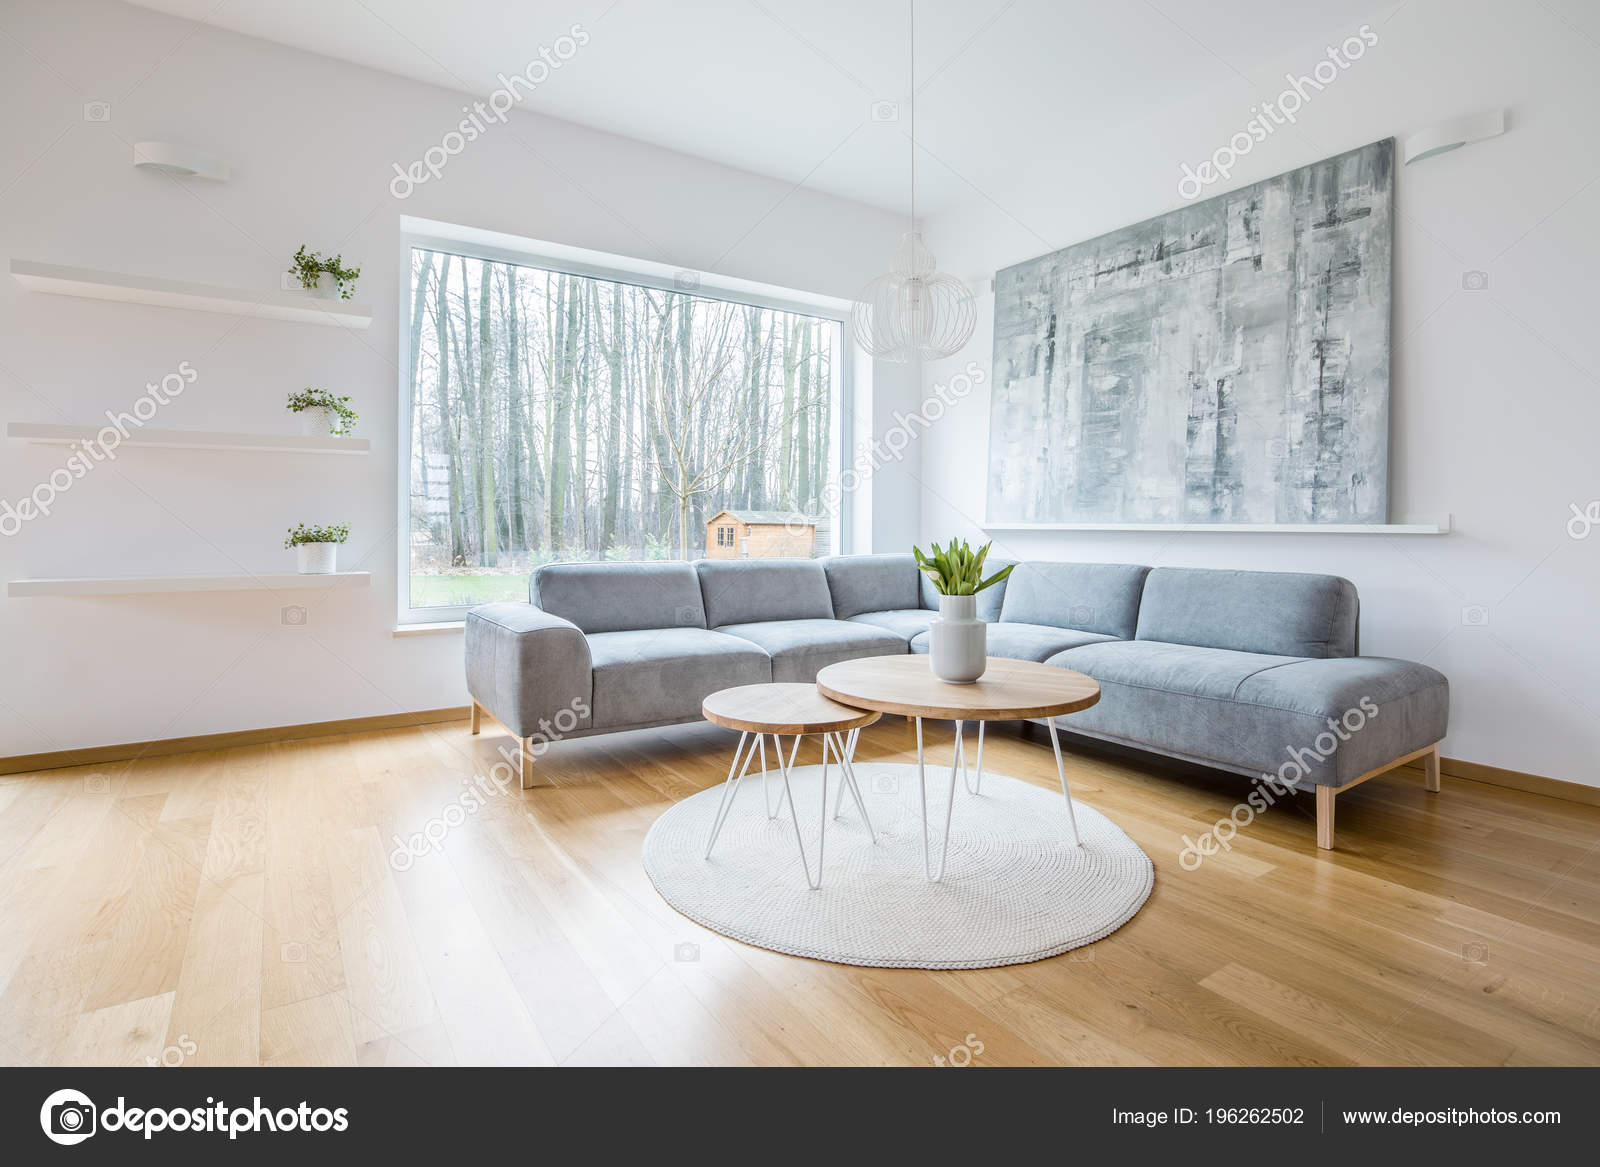 Two Hairpin Tables Placed Rug White Sitting Room Interior